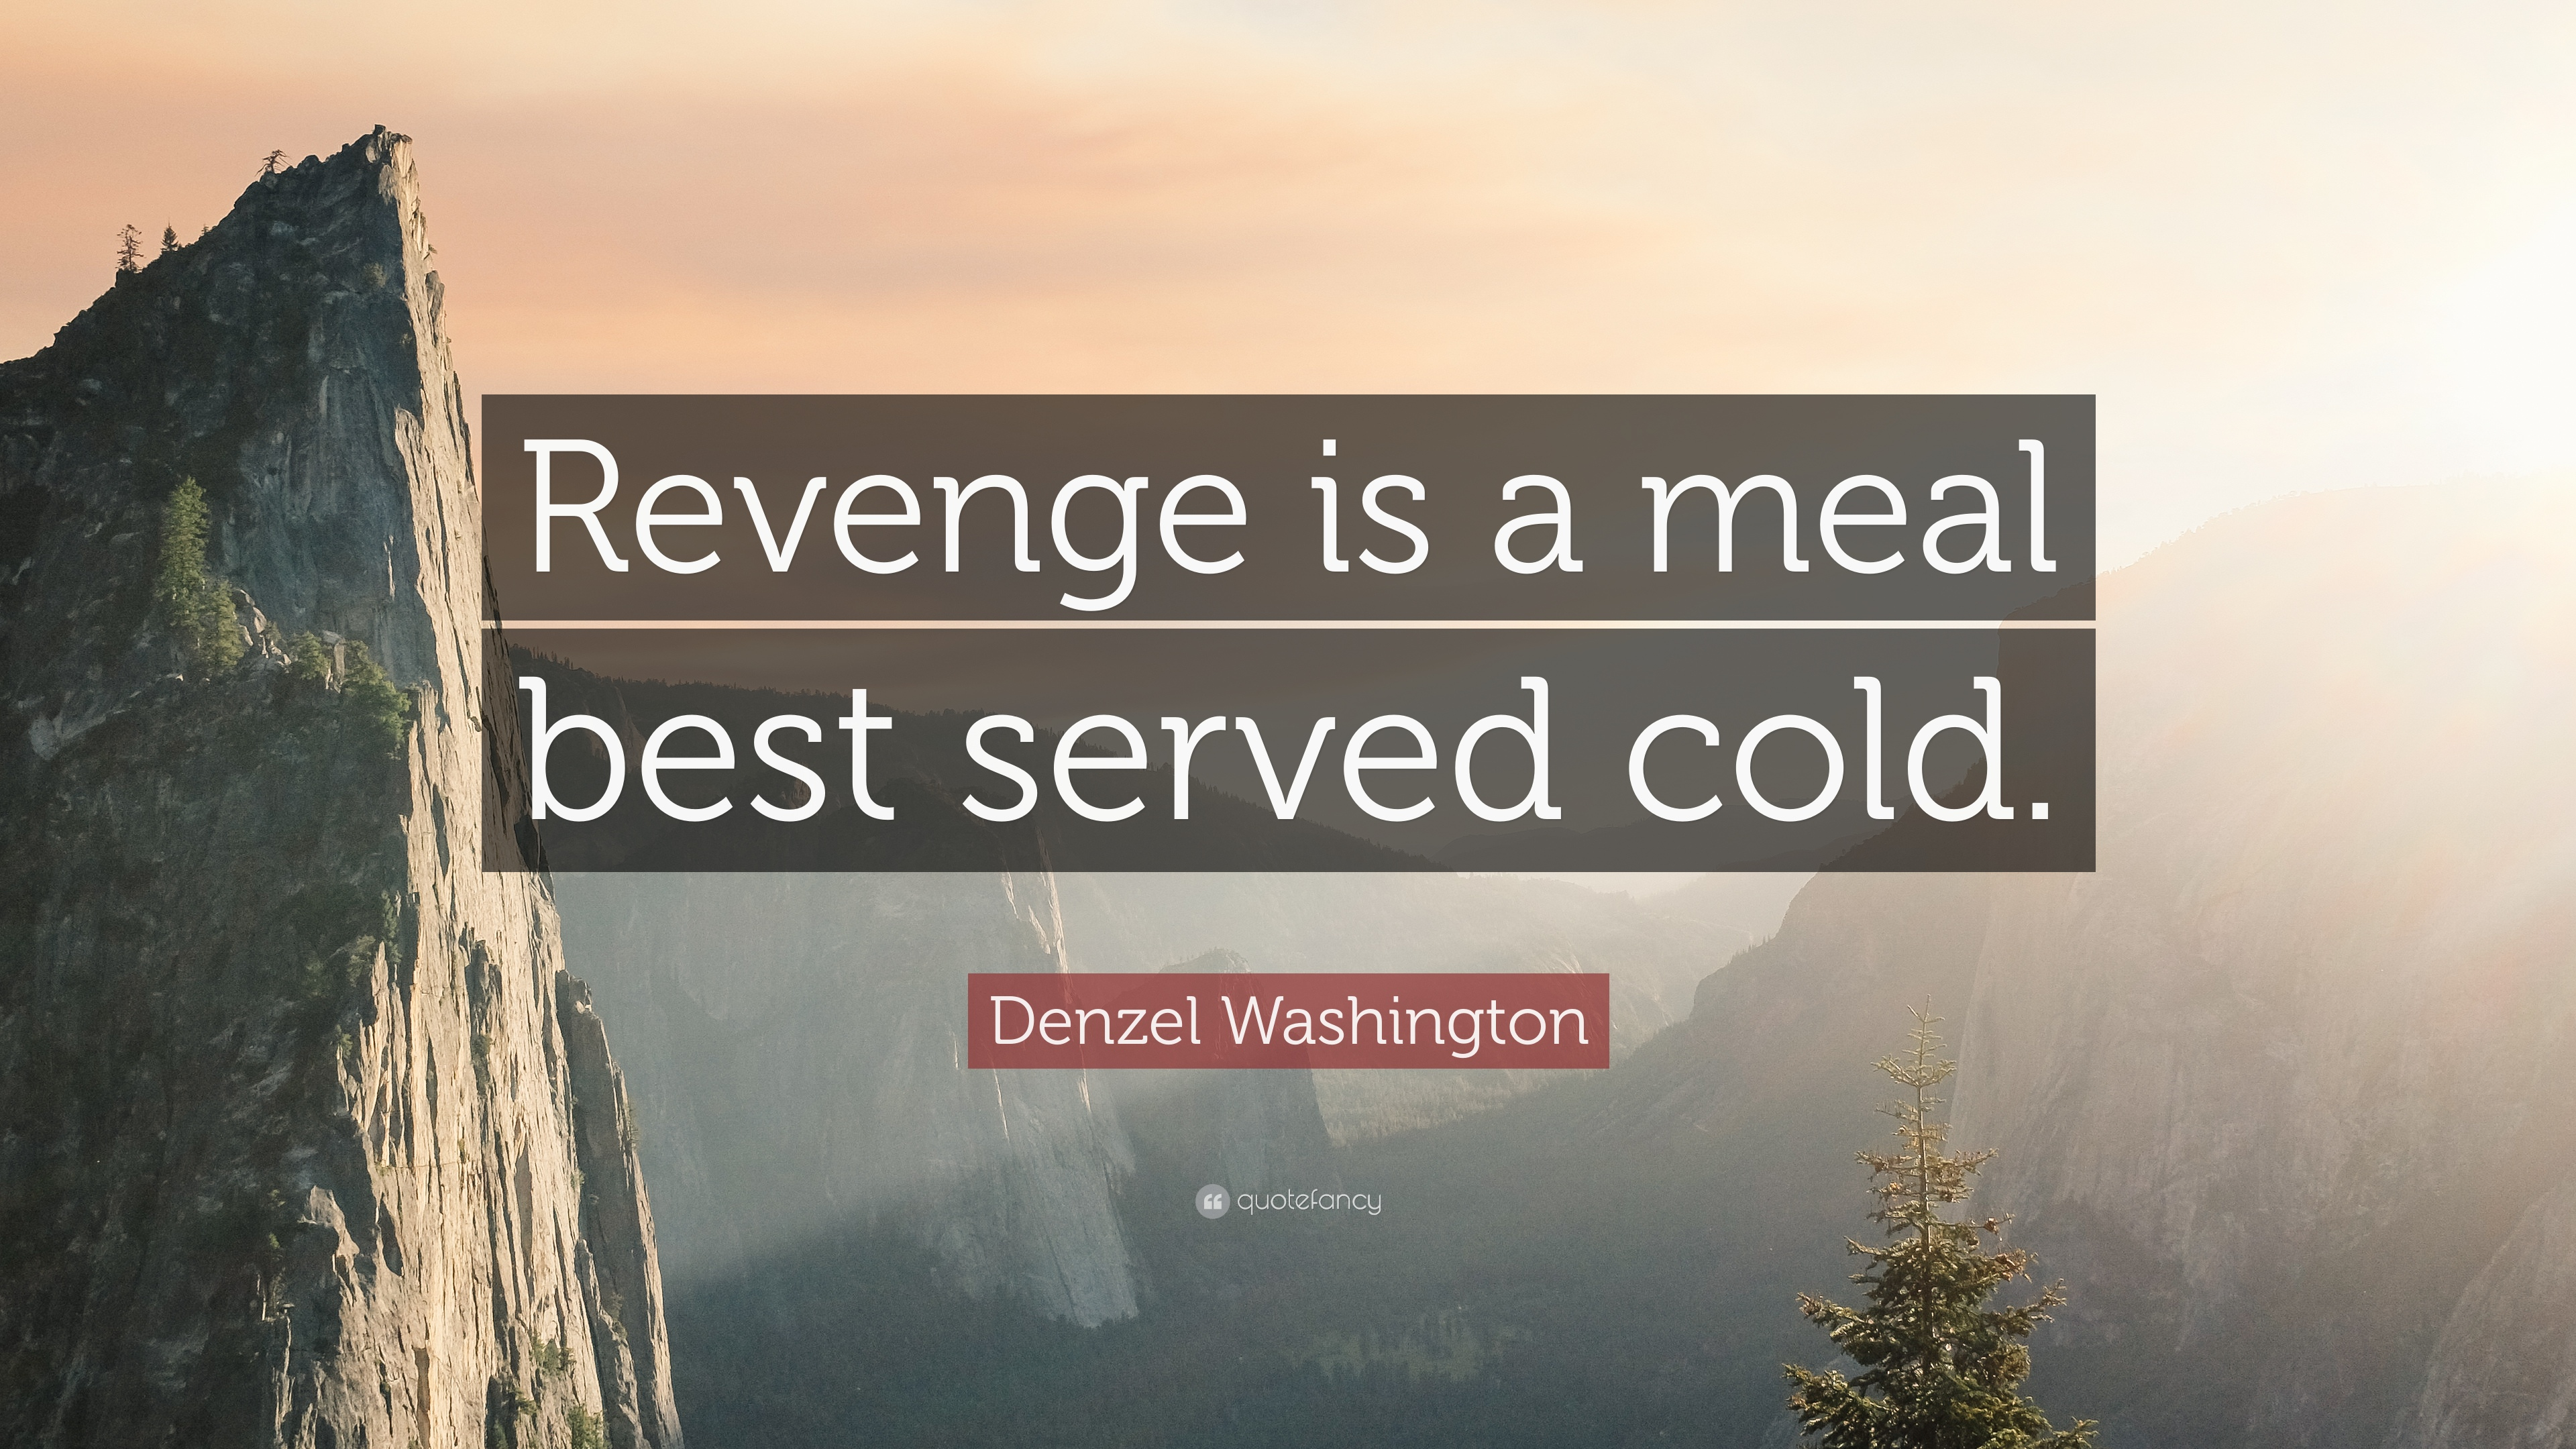 Quotes About Revenge | Denzel Washington Quote Revenge Is A Meal Best Served Cold 7